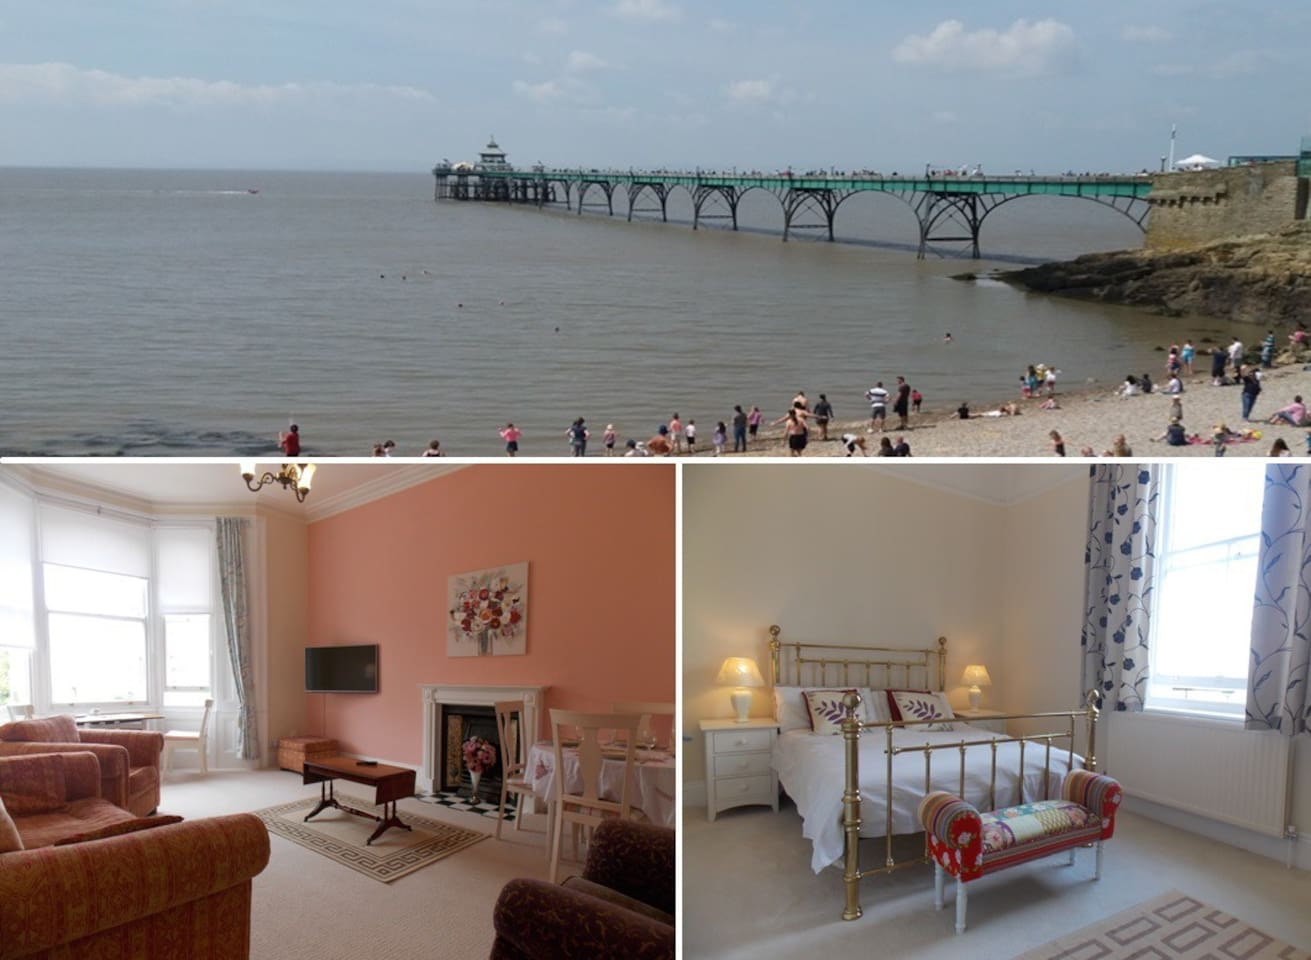 Enjoy Clevedon's beautiful seaside and Victorian Pier from a lovely Victorian apartment